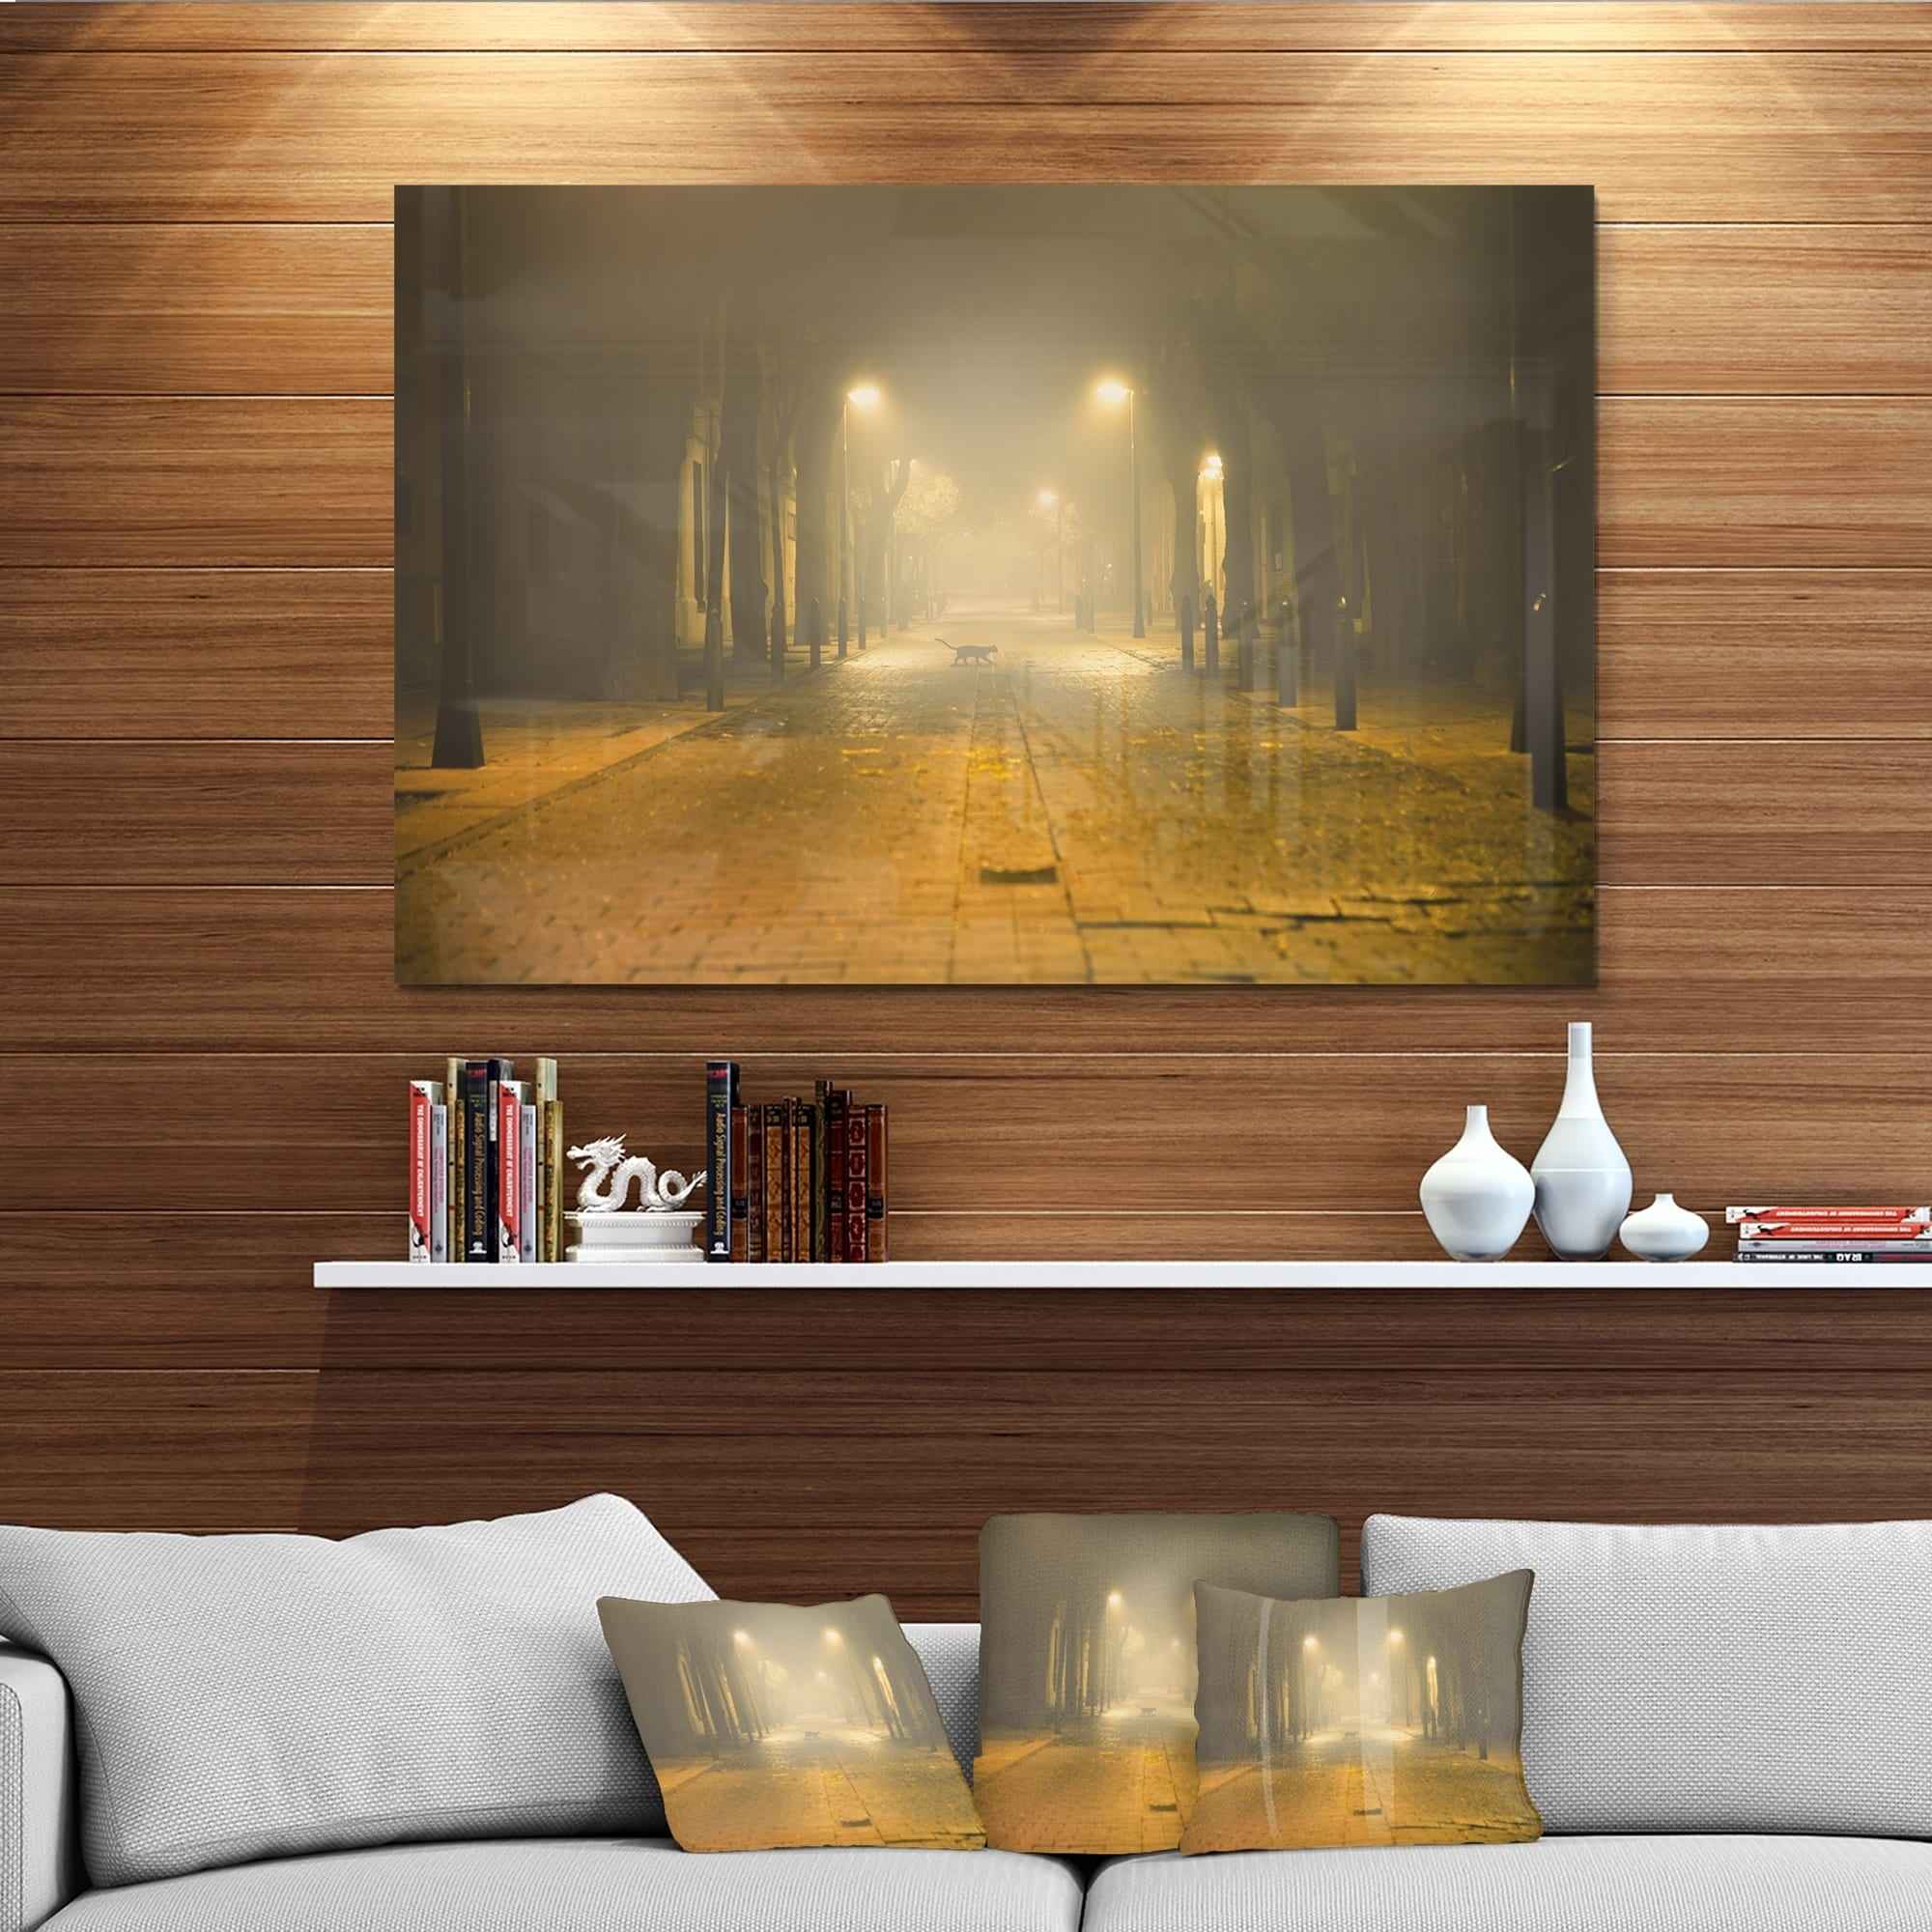 Urban Street At Night Landscape Photo Glossy Metal Wall Art Overstock 12780149